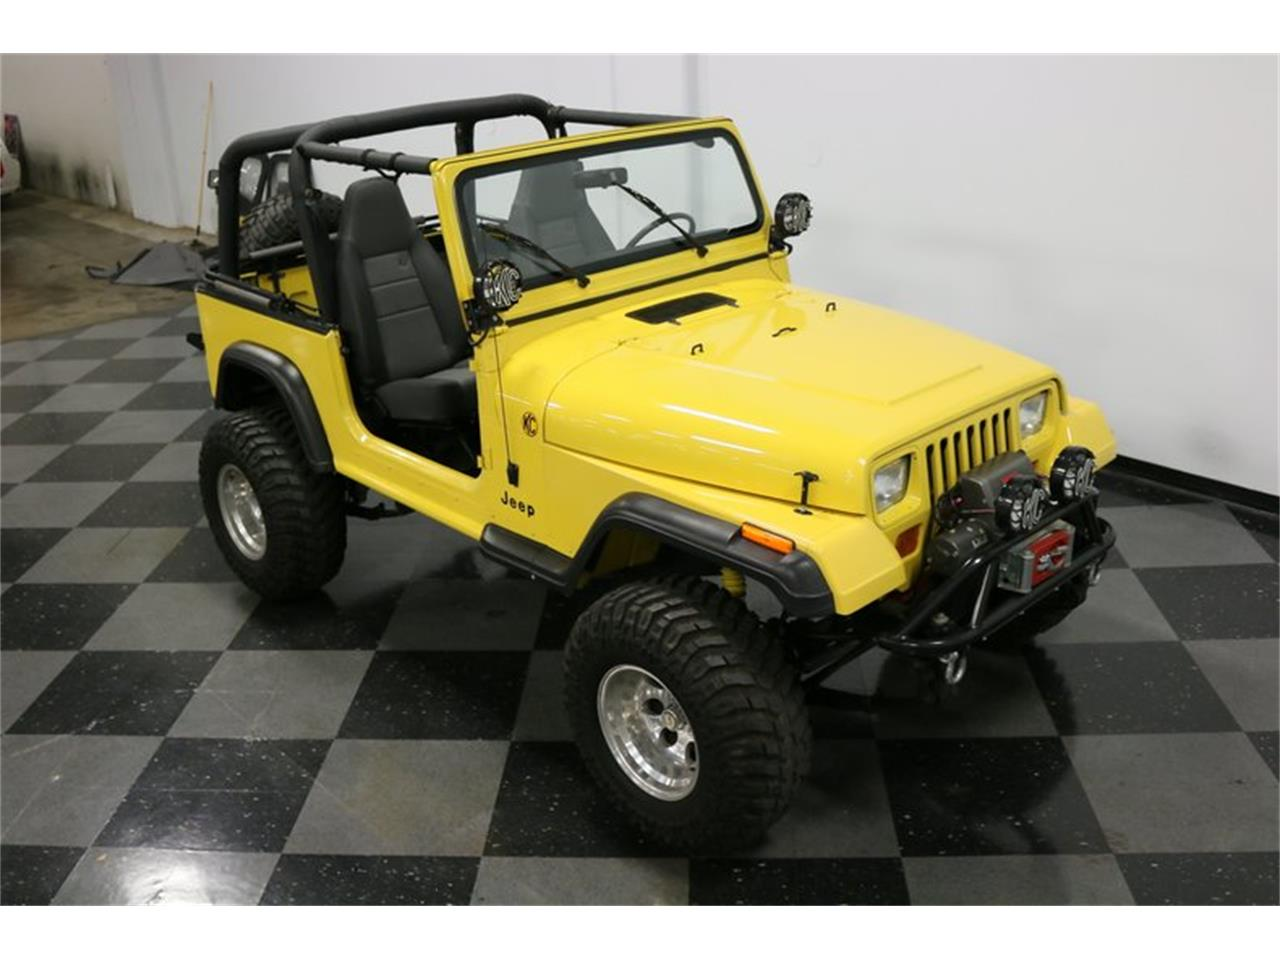 Large Picture of '93 Jeep Wrangler located in Ft Worth Texas Offered by Streetside Classics - Dallas / Fort Worth - P701